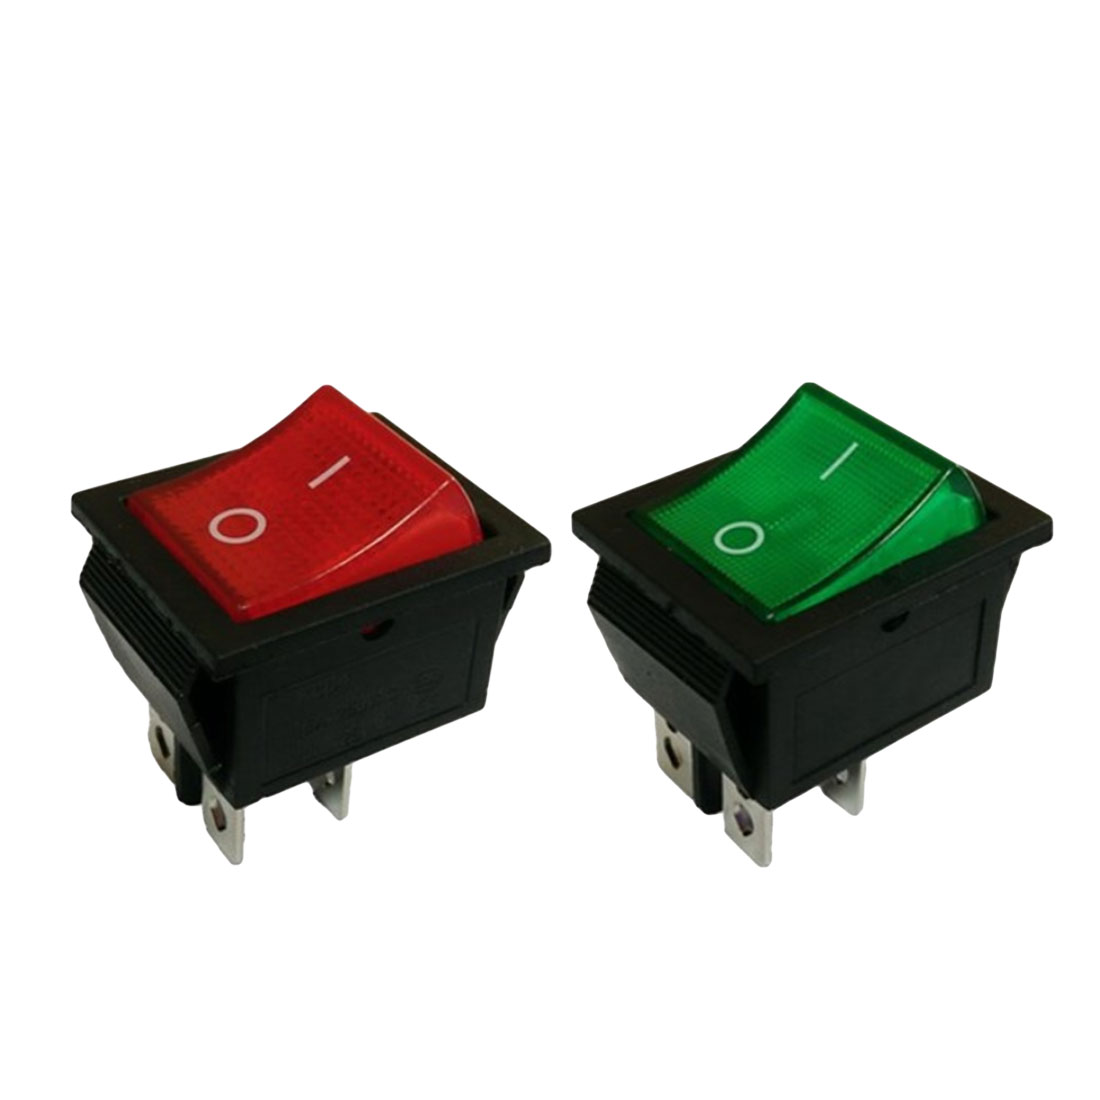 1pcs Promotion Light 4 Pin DPST ON/OFF Snap in Boat Rocker Switch 10A/220V AC Green Red 5pcs black oval rocker boat switch 3pins single pole double throw 3positions on off on snap in panel mount 10a 125vac 6a 250vac